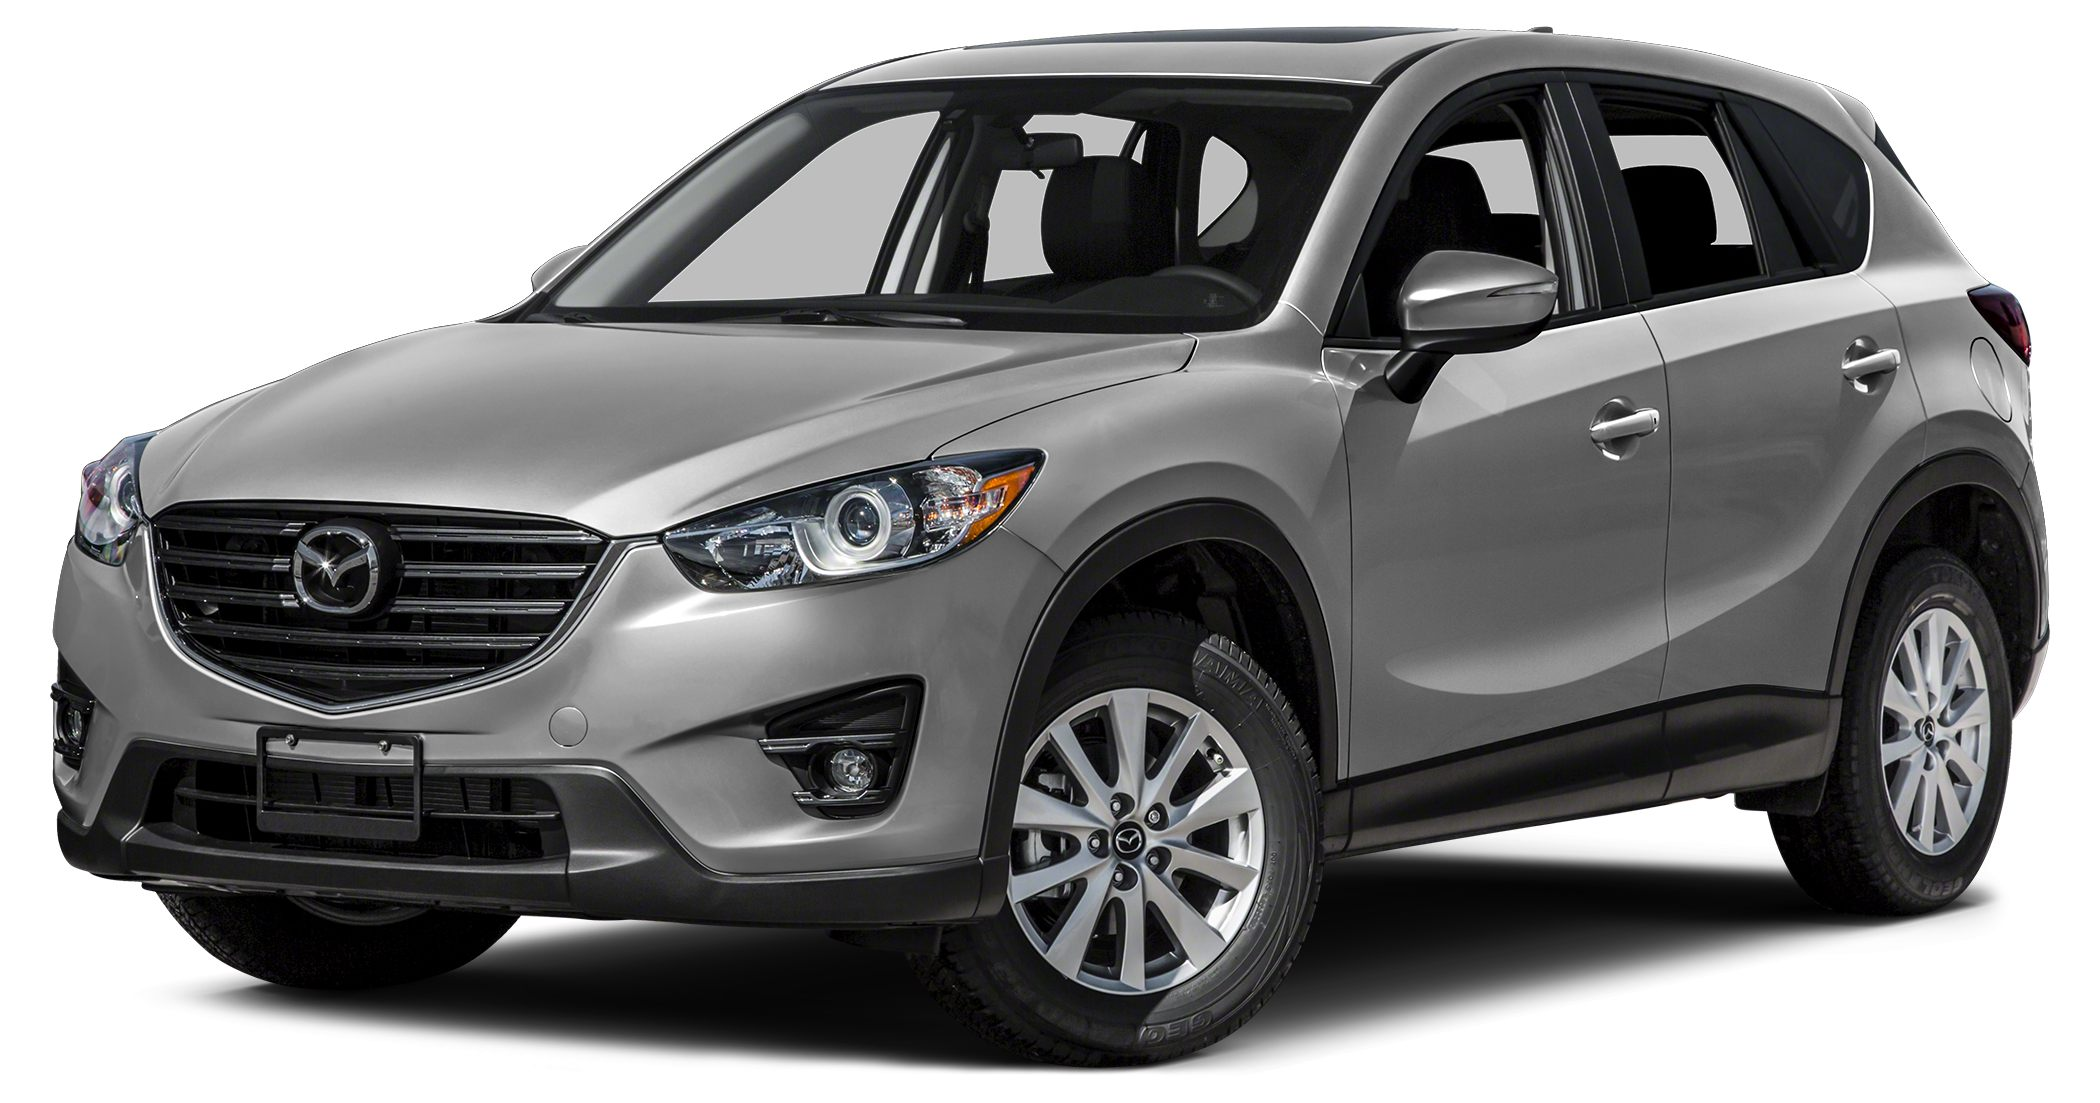 2016 Mazda CX-5 Touring Introducing the 2016 Mazda Mazda CX-5 Comprehensive style mixed with all